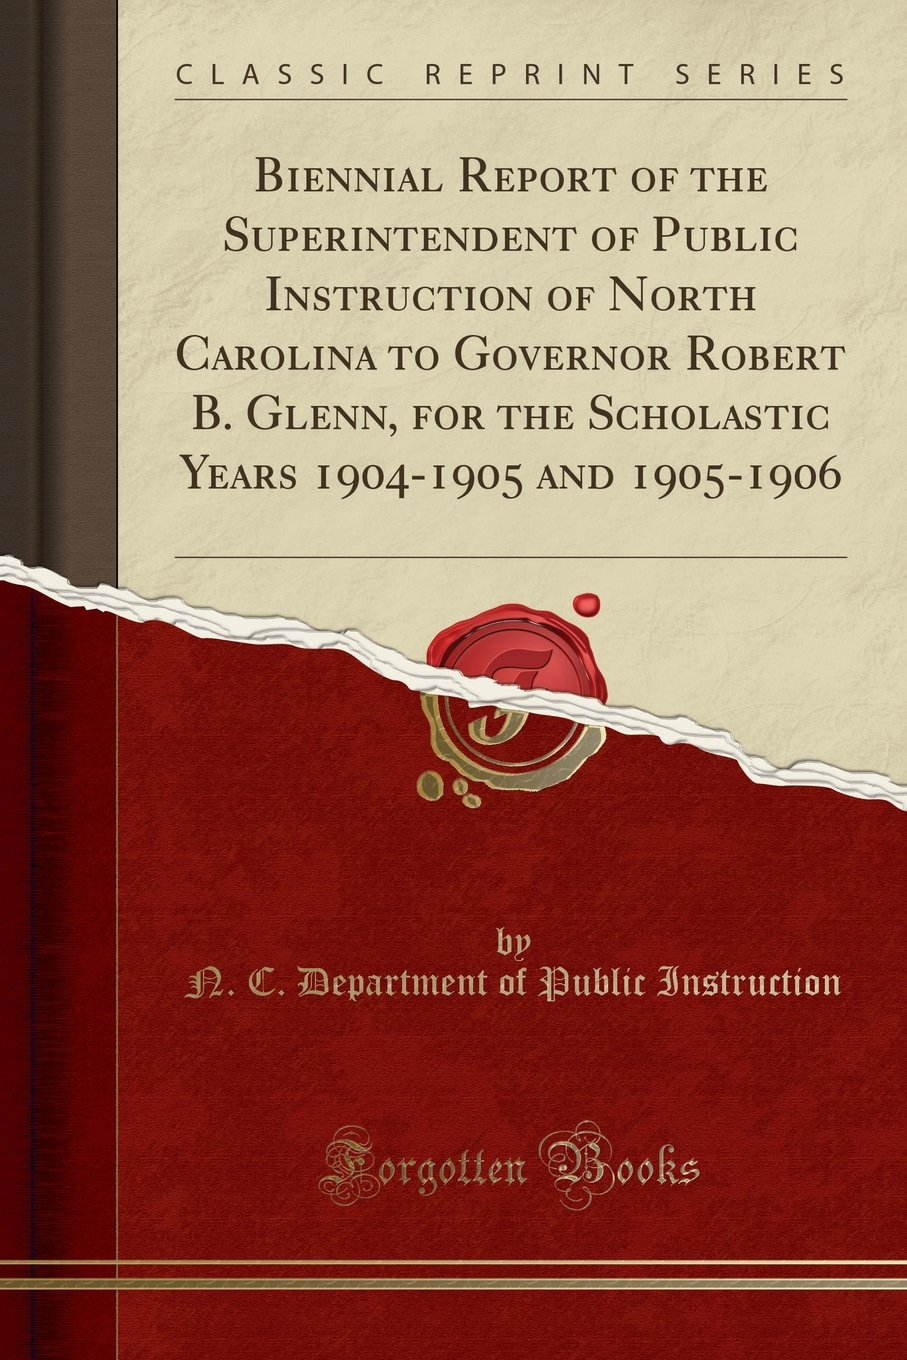 Biennial Report of the Superintendent of Public Instruction of North Carolina to Governor Robert B. Glenn, for the Scholastic Years 1904-1905 and 1905-1906 (Classic Reprint) pdf epub